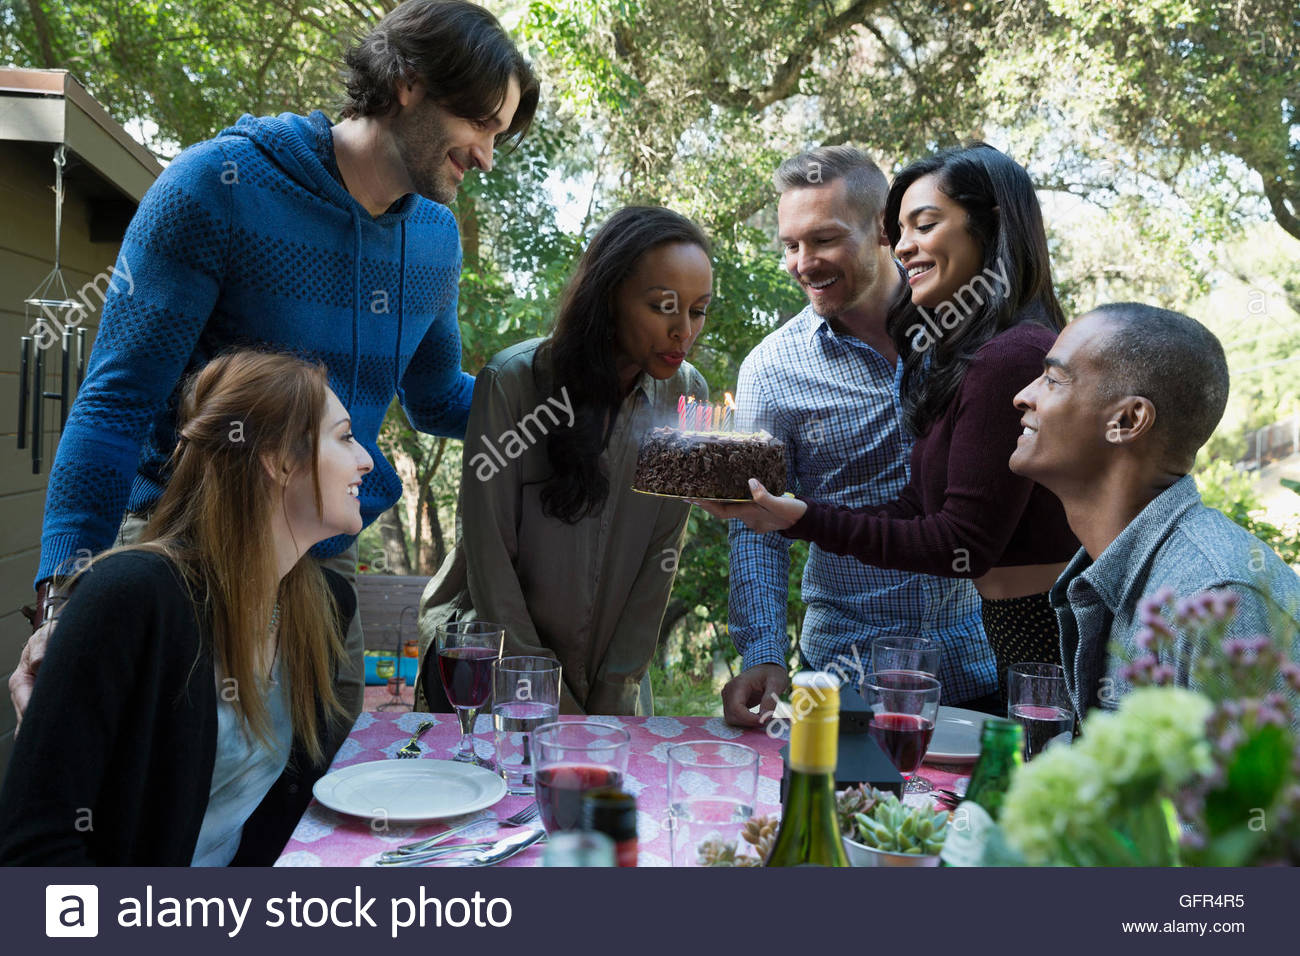 Woman blowing out birthday cake candles at patio table - Stock Image